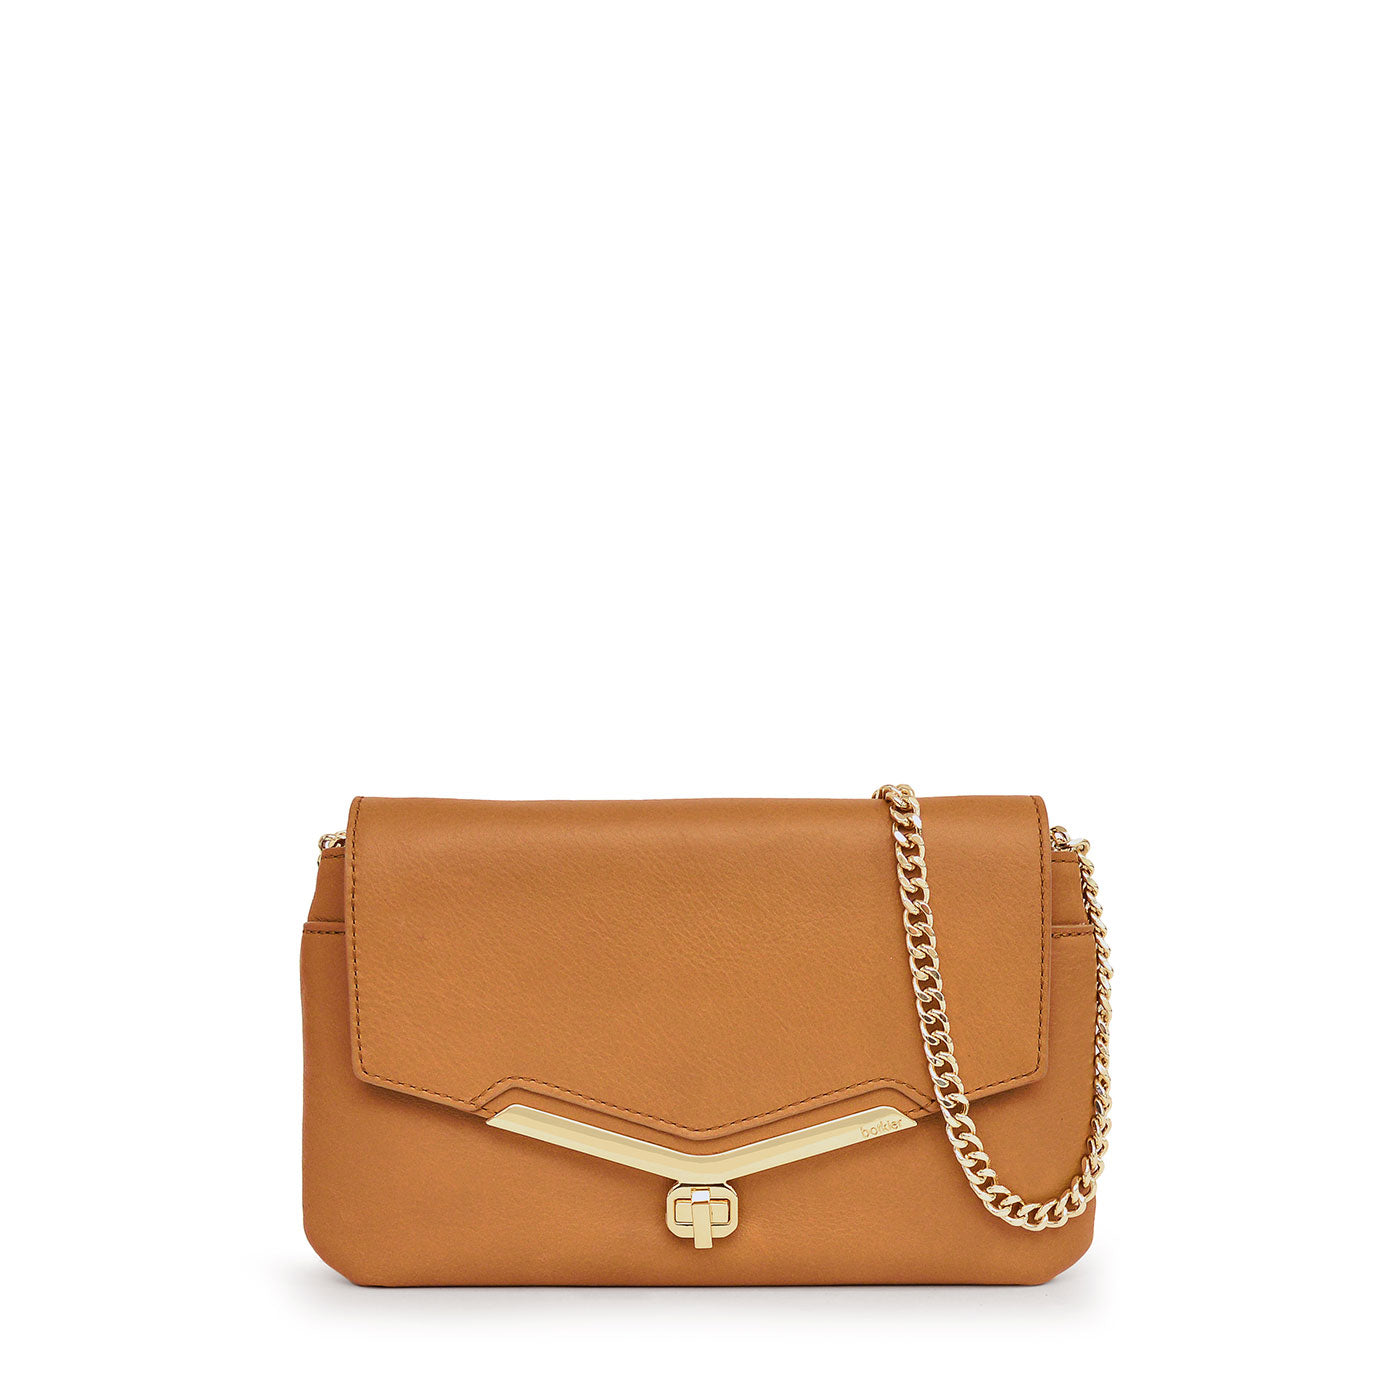 Valentina Mini Chain Crossbody